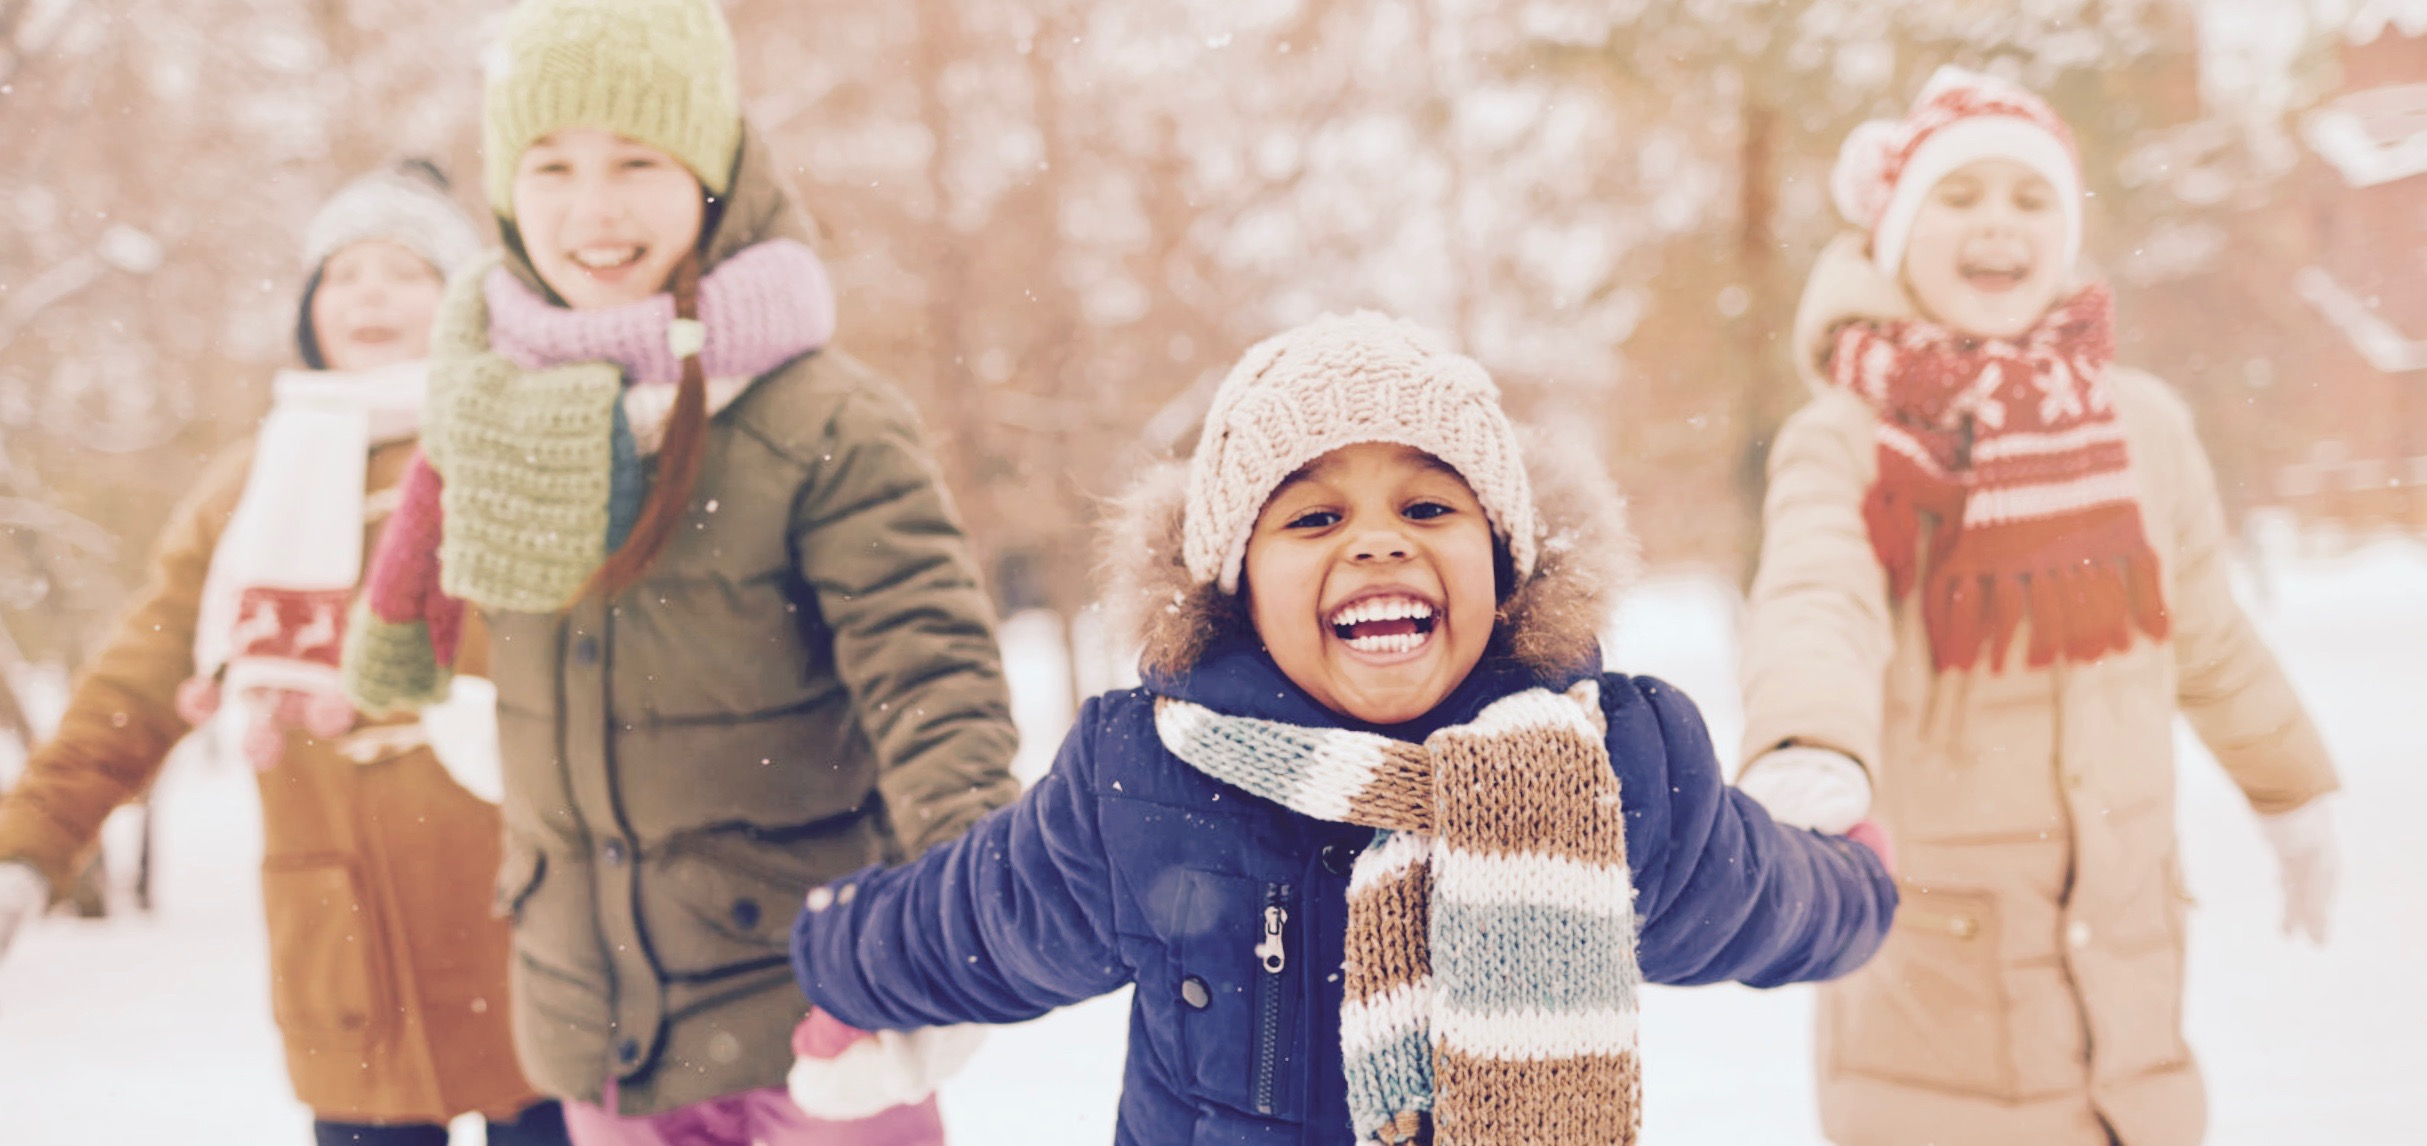 New Outdoor Learning Activities For Children This Winter